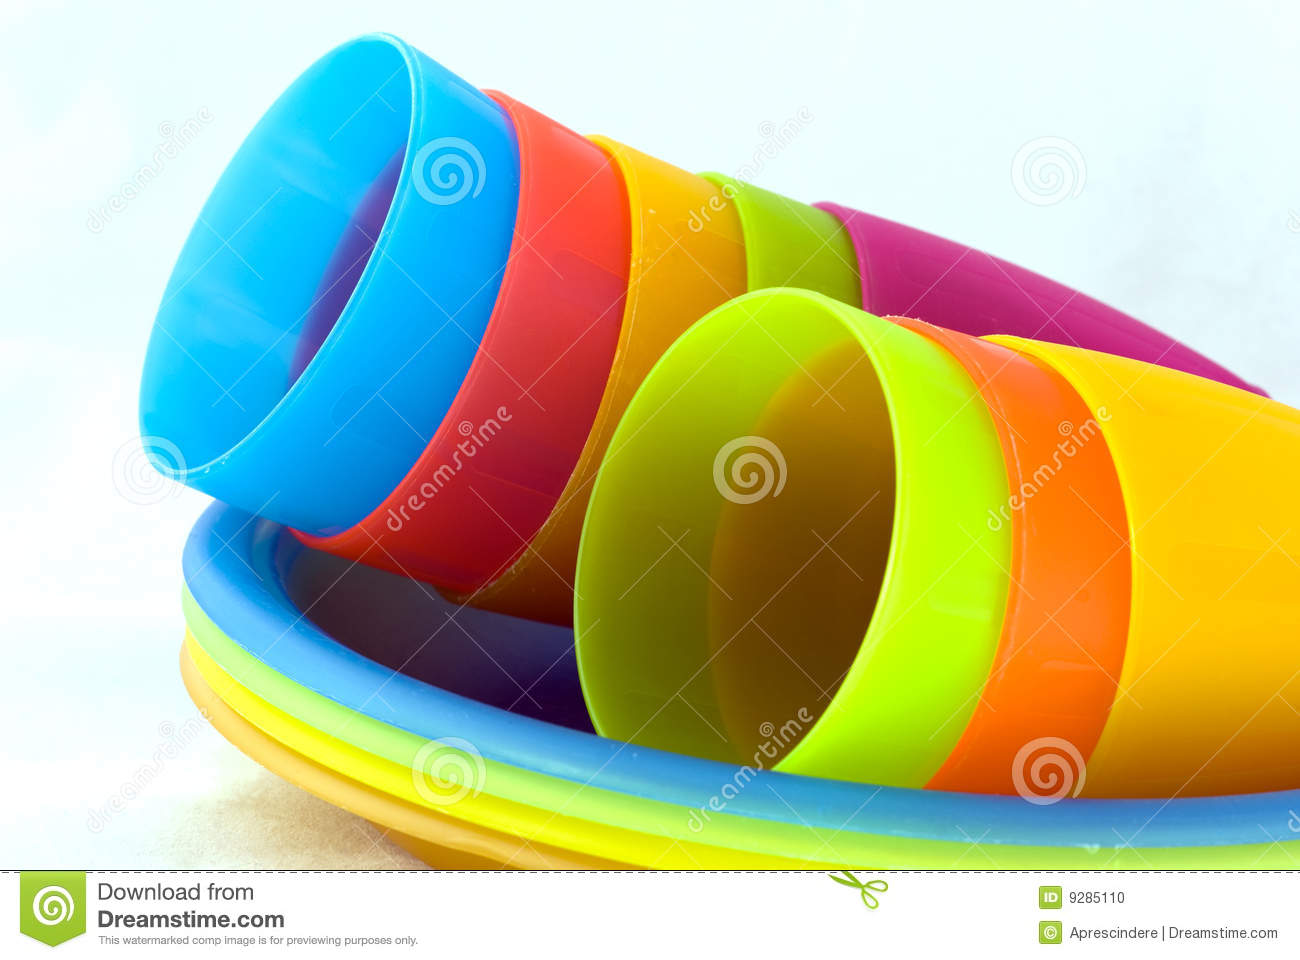 Plastic cups and plates & Plastic cups and plates stock photo. Image of children - 9285110